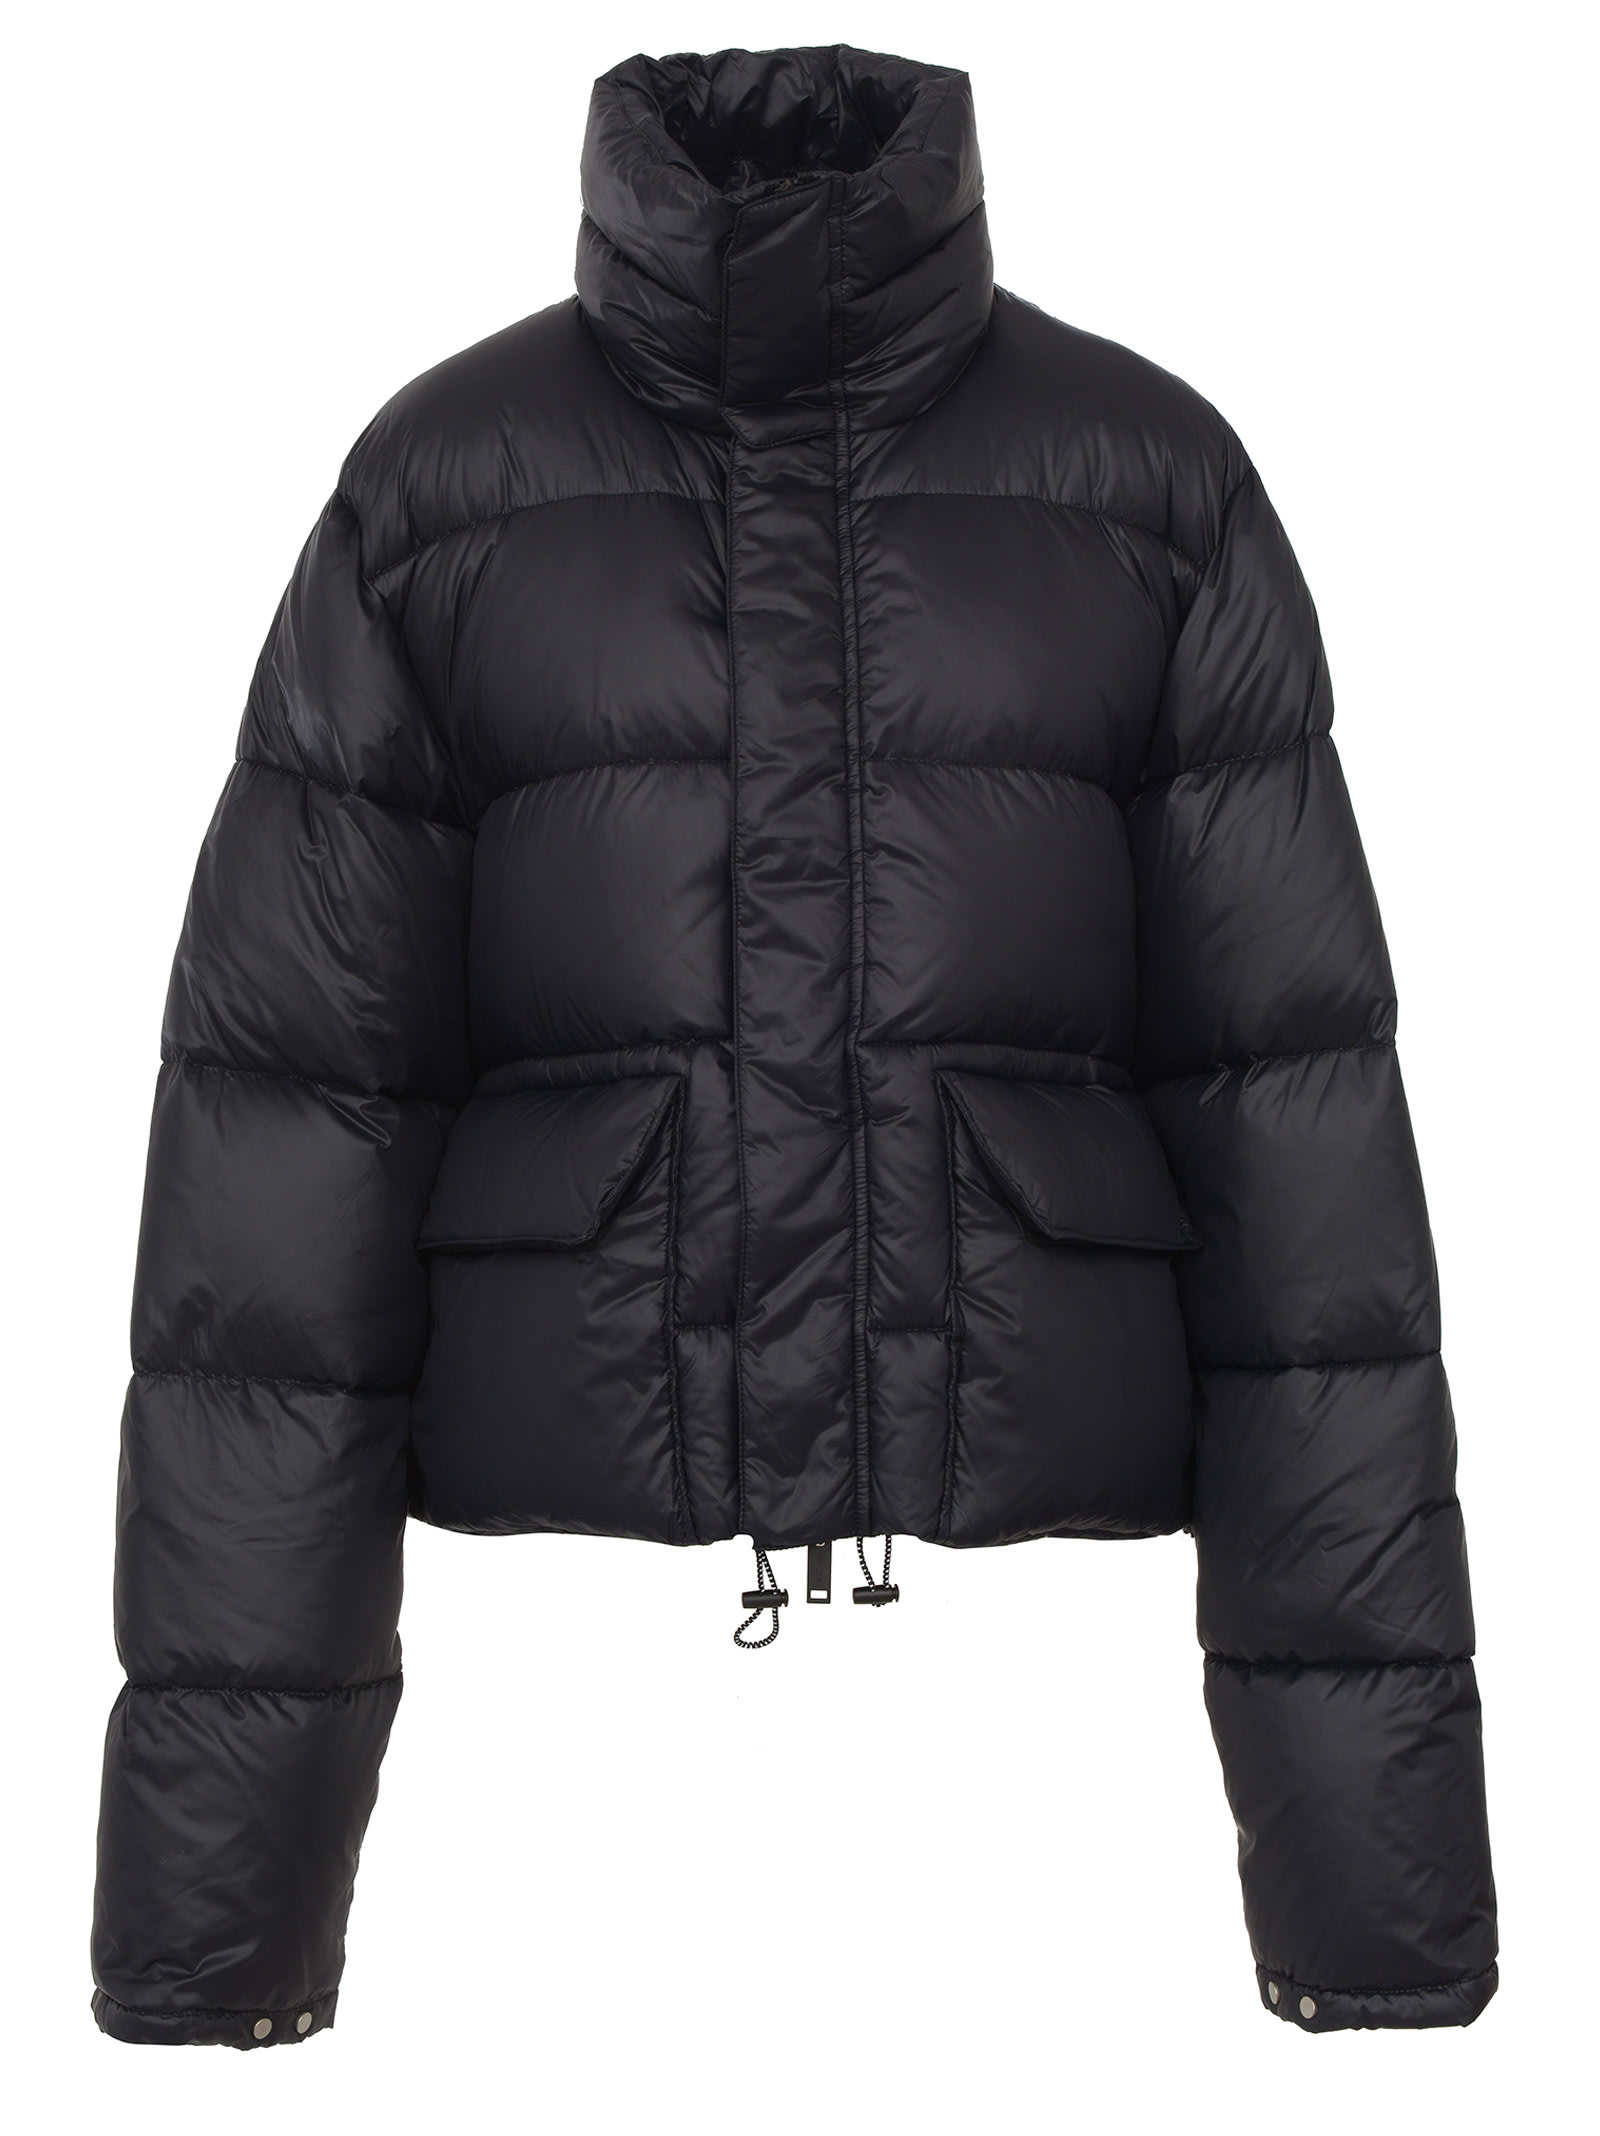 Ben Taverniti Unravel Project Down Jacket